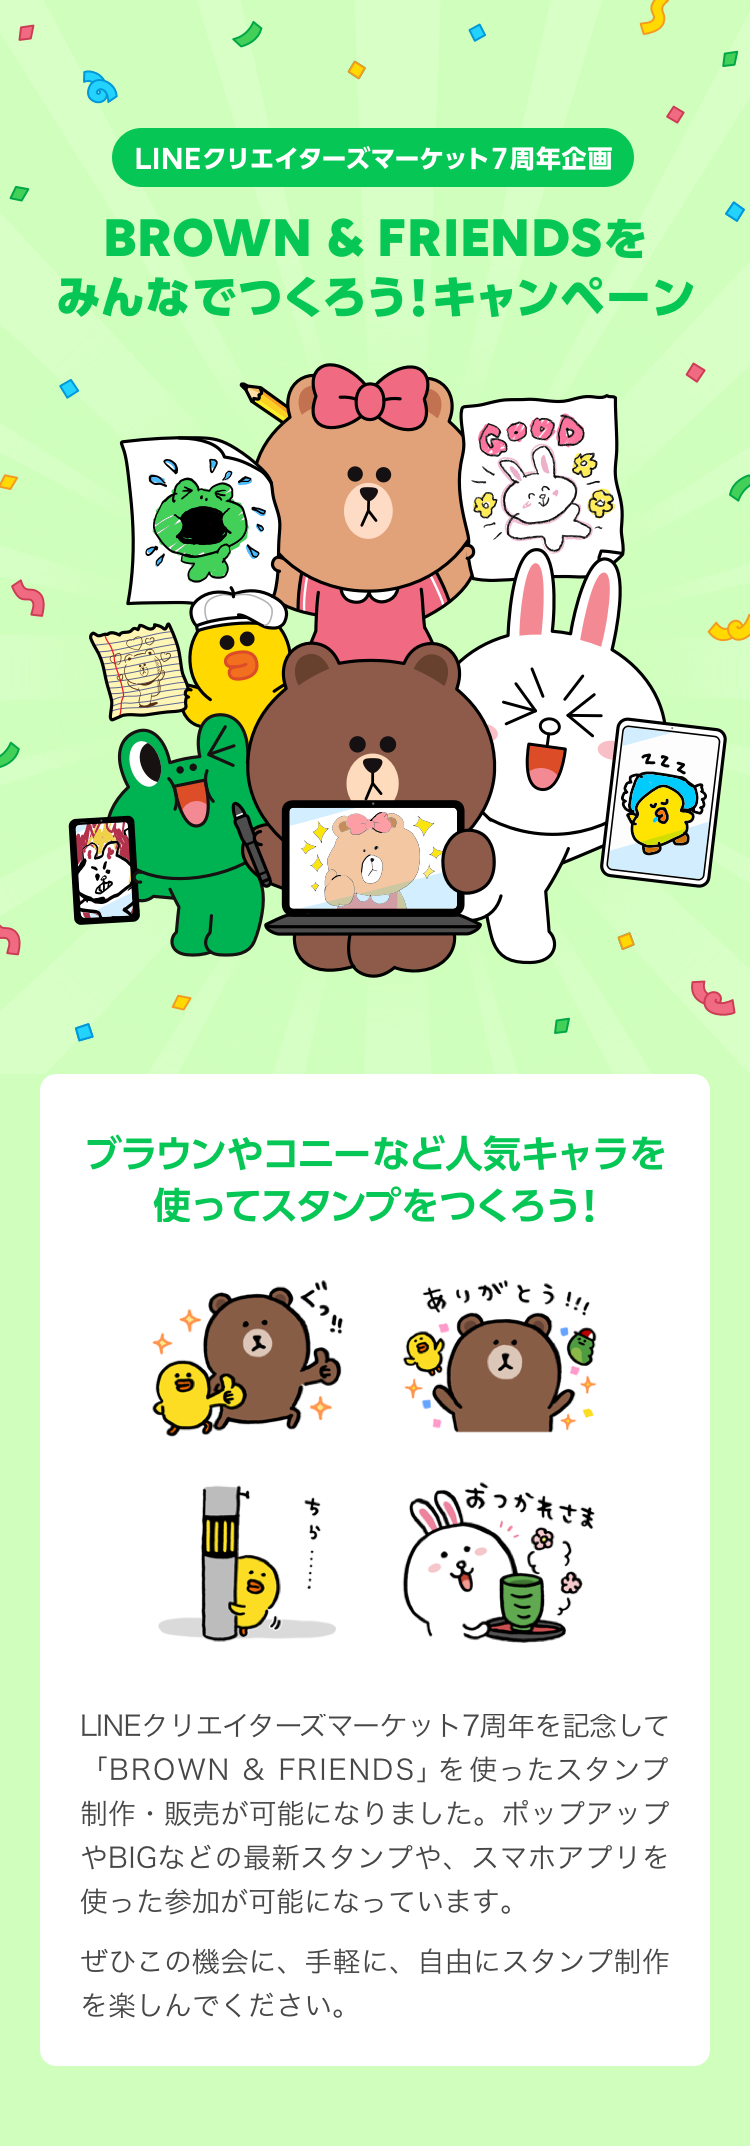 BROWN & FRIENDSをみんなでつくろう!キャンペーン